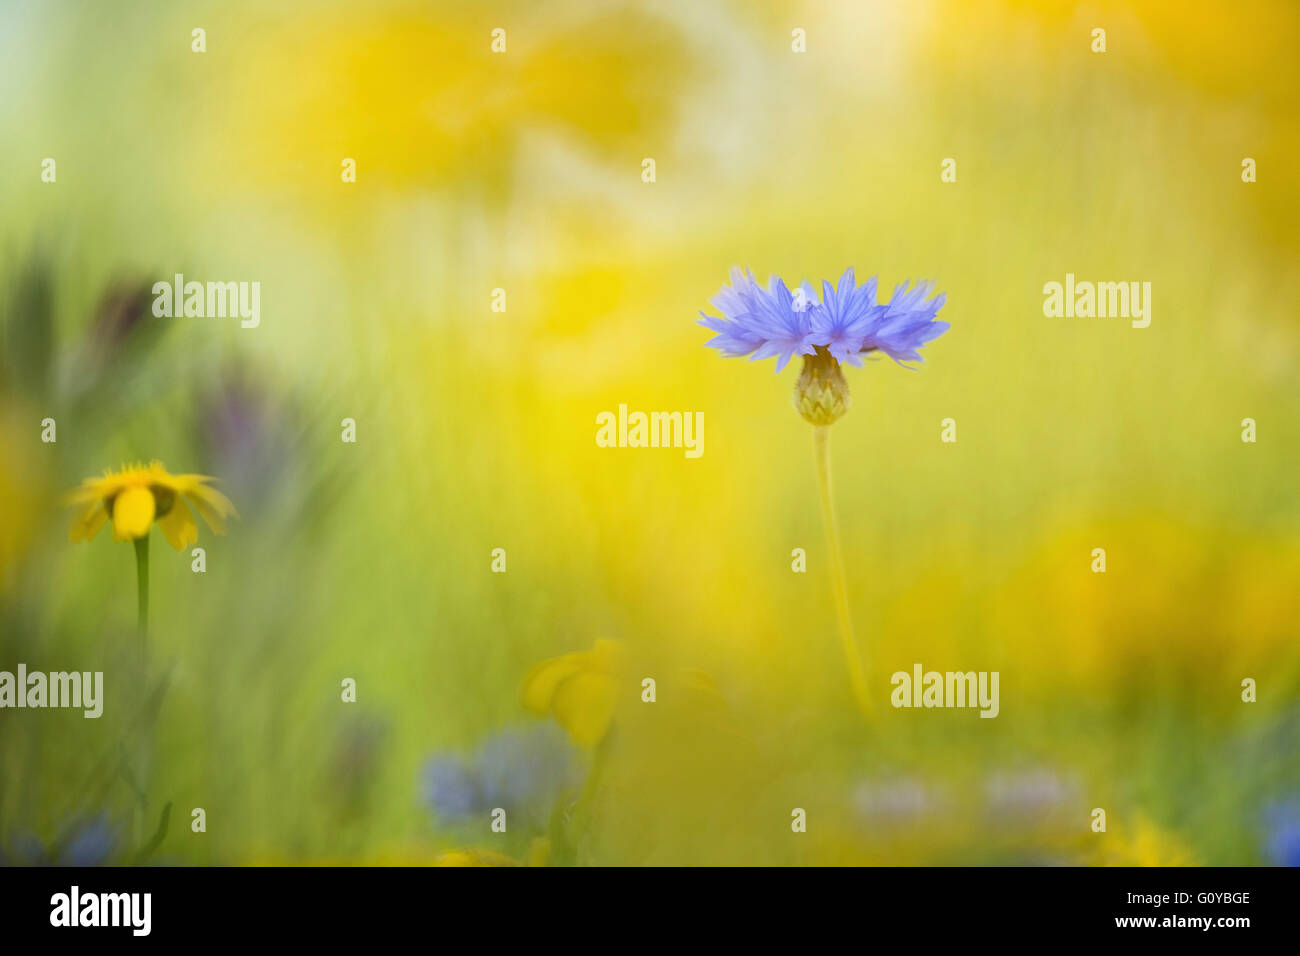 Bachelor Button Plant Flower Medicinal Uses Germany National Flower Stock Photos & Germany National